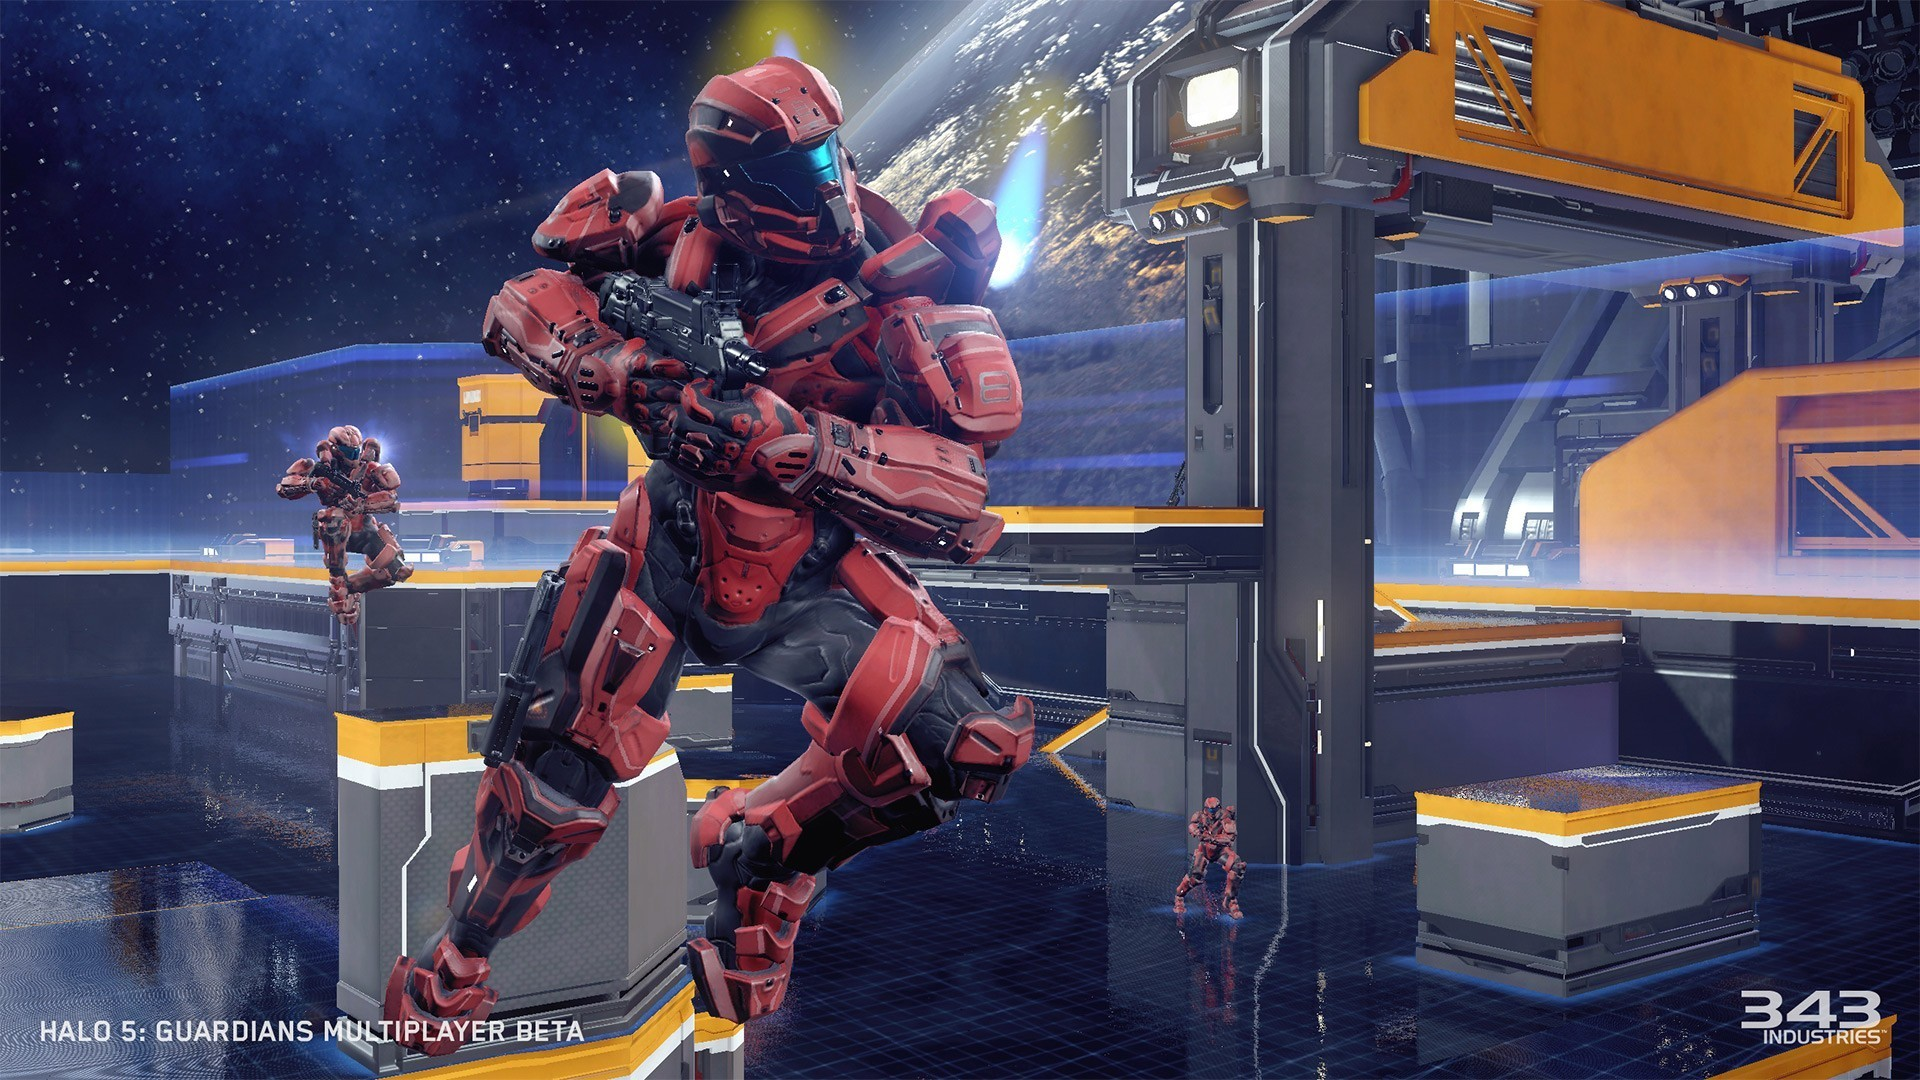 Halo 5: Guardians Will Have Expanded Forge, No Remastered Classic Maps